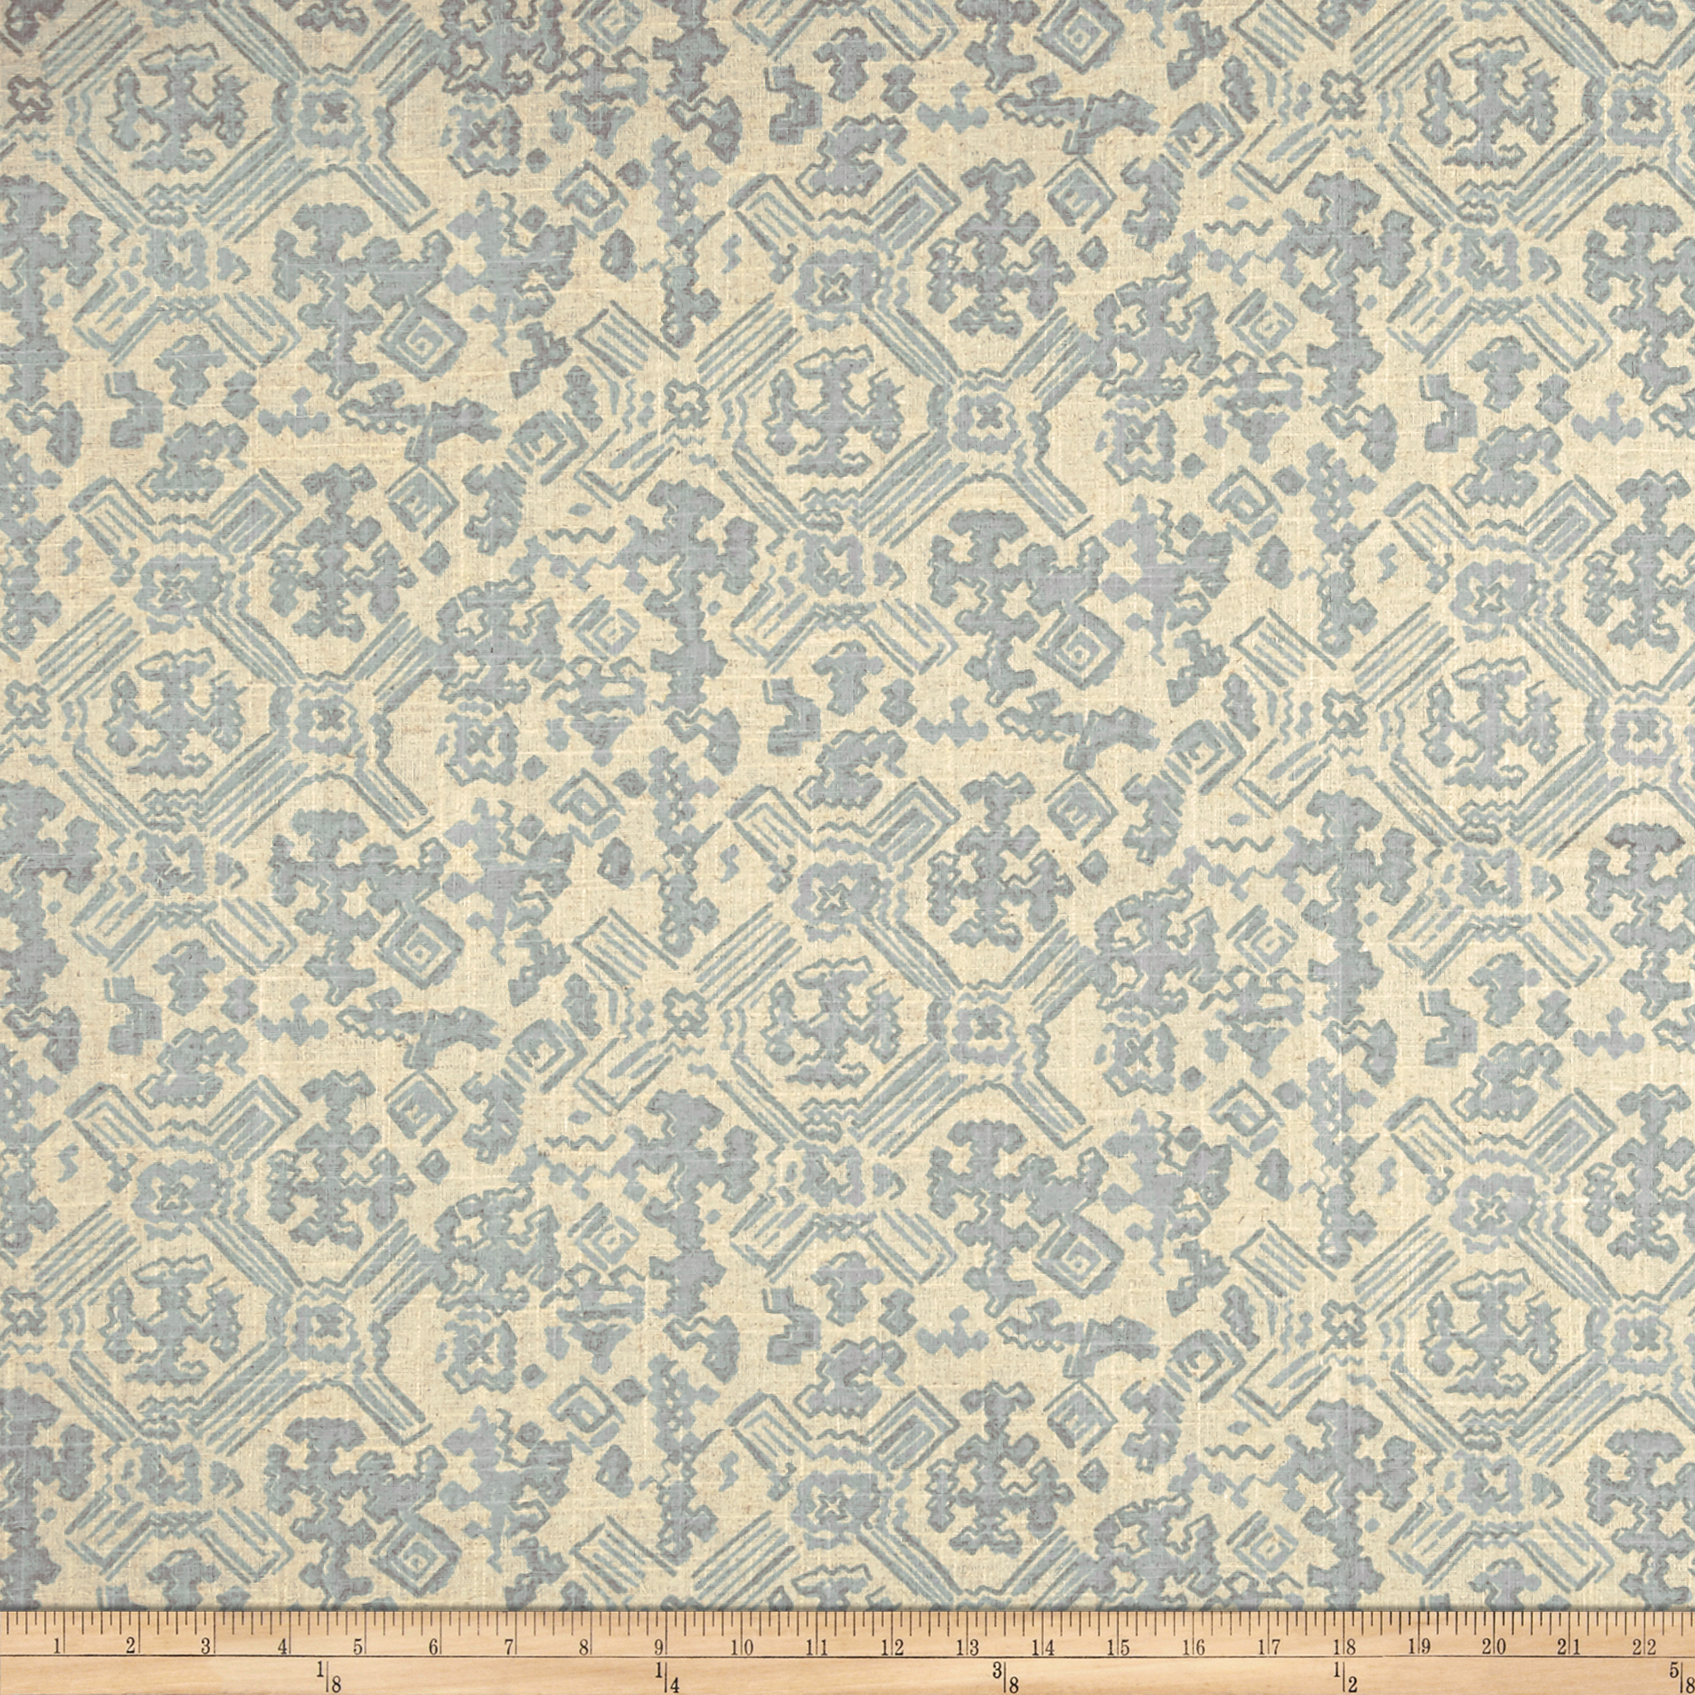 Lacefield Nomad Swedish Blue Pearlized Fabric by Lacefield in USA